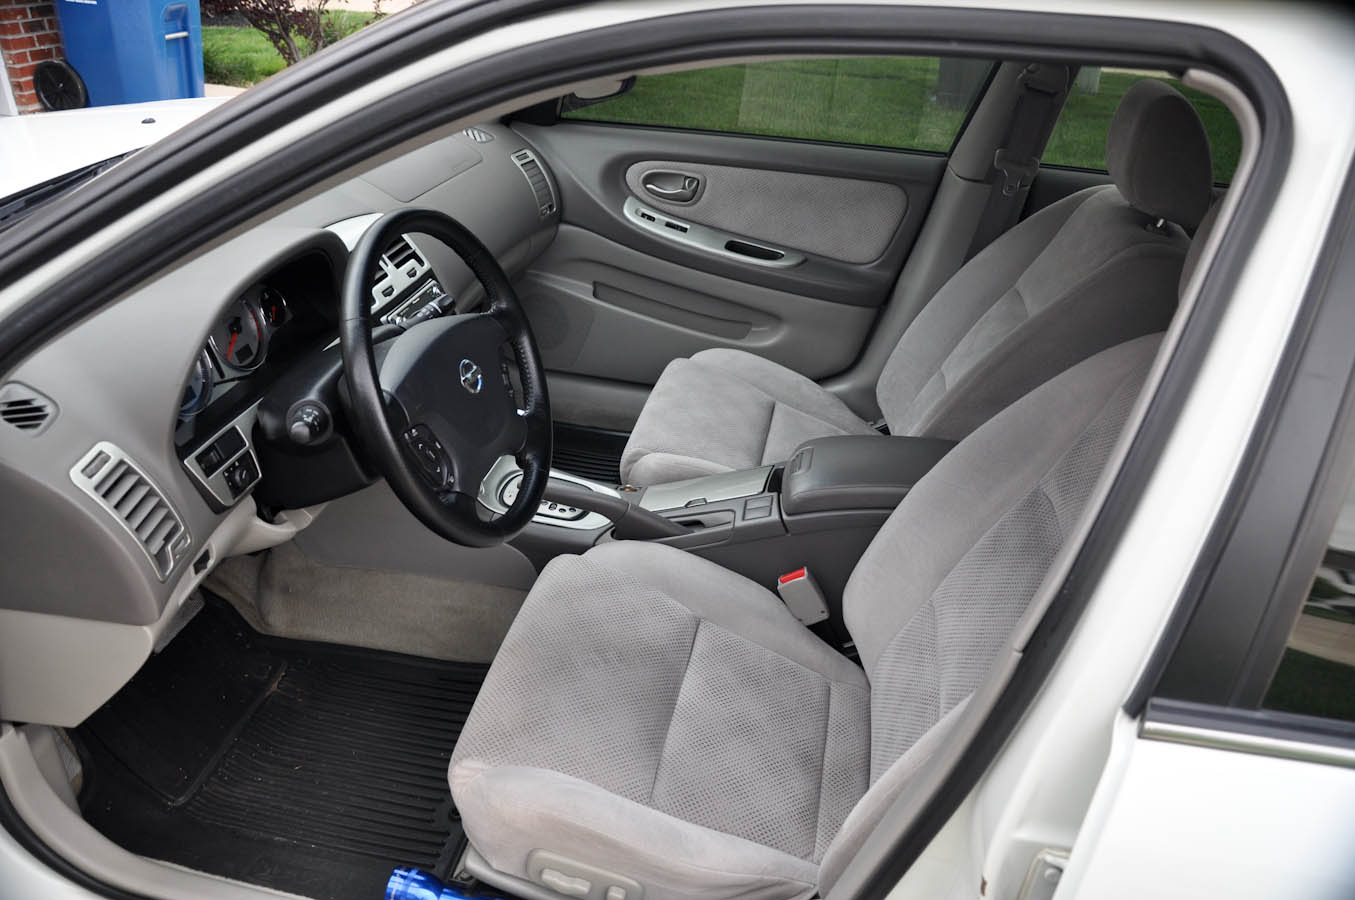 2002 nissan maxima black interior gallery hd cars wallpaper 2002 nissan maxima fs 7200 attached images vanachro gallery vanachro Image collections